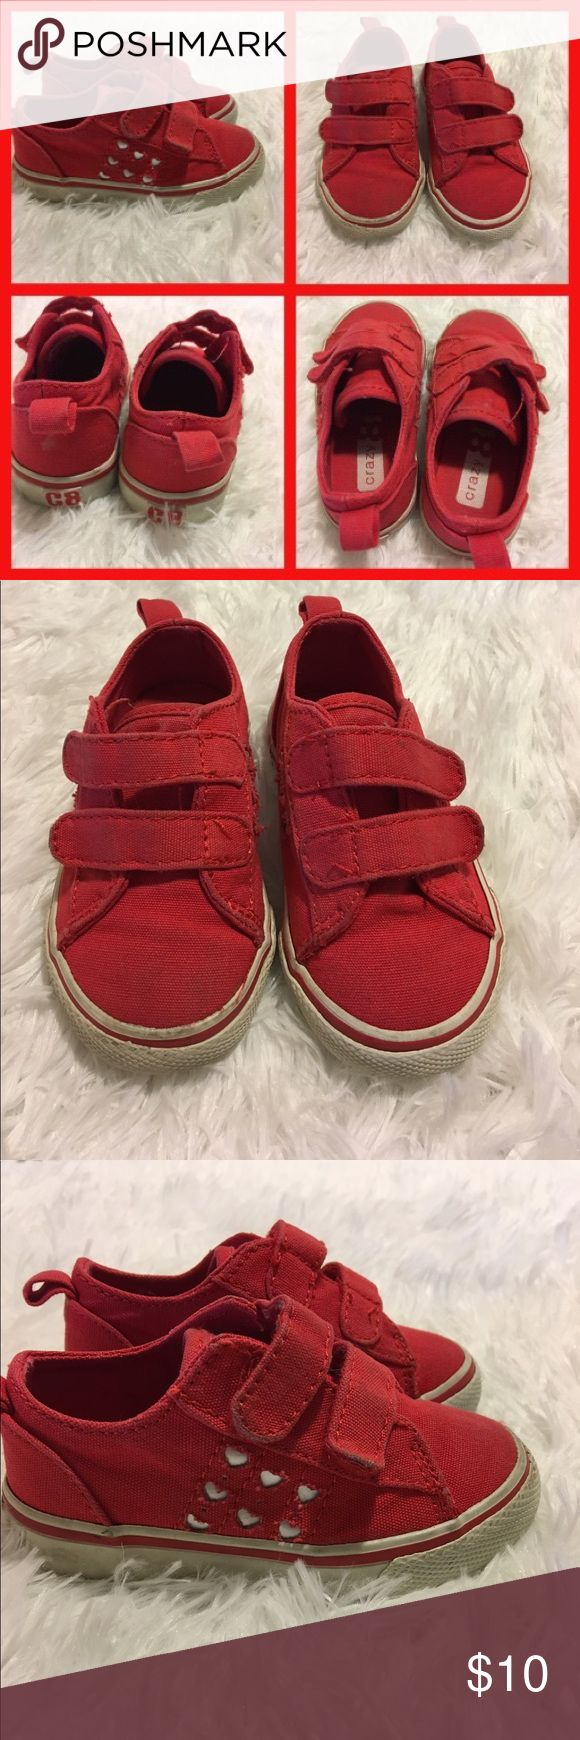 Crazy 8 Size 6 toddler girl's red shoes w/ hearts Cute red shoes with hearts on the side from Crazy 8. Size 6 and cute!  Can go with jeans, leggings, skirts, dresses, overalls, pants, etc. Bundle with my other items and save money! Come from a smoke-free home. Crazy 8 Shoes Sneakers